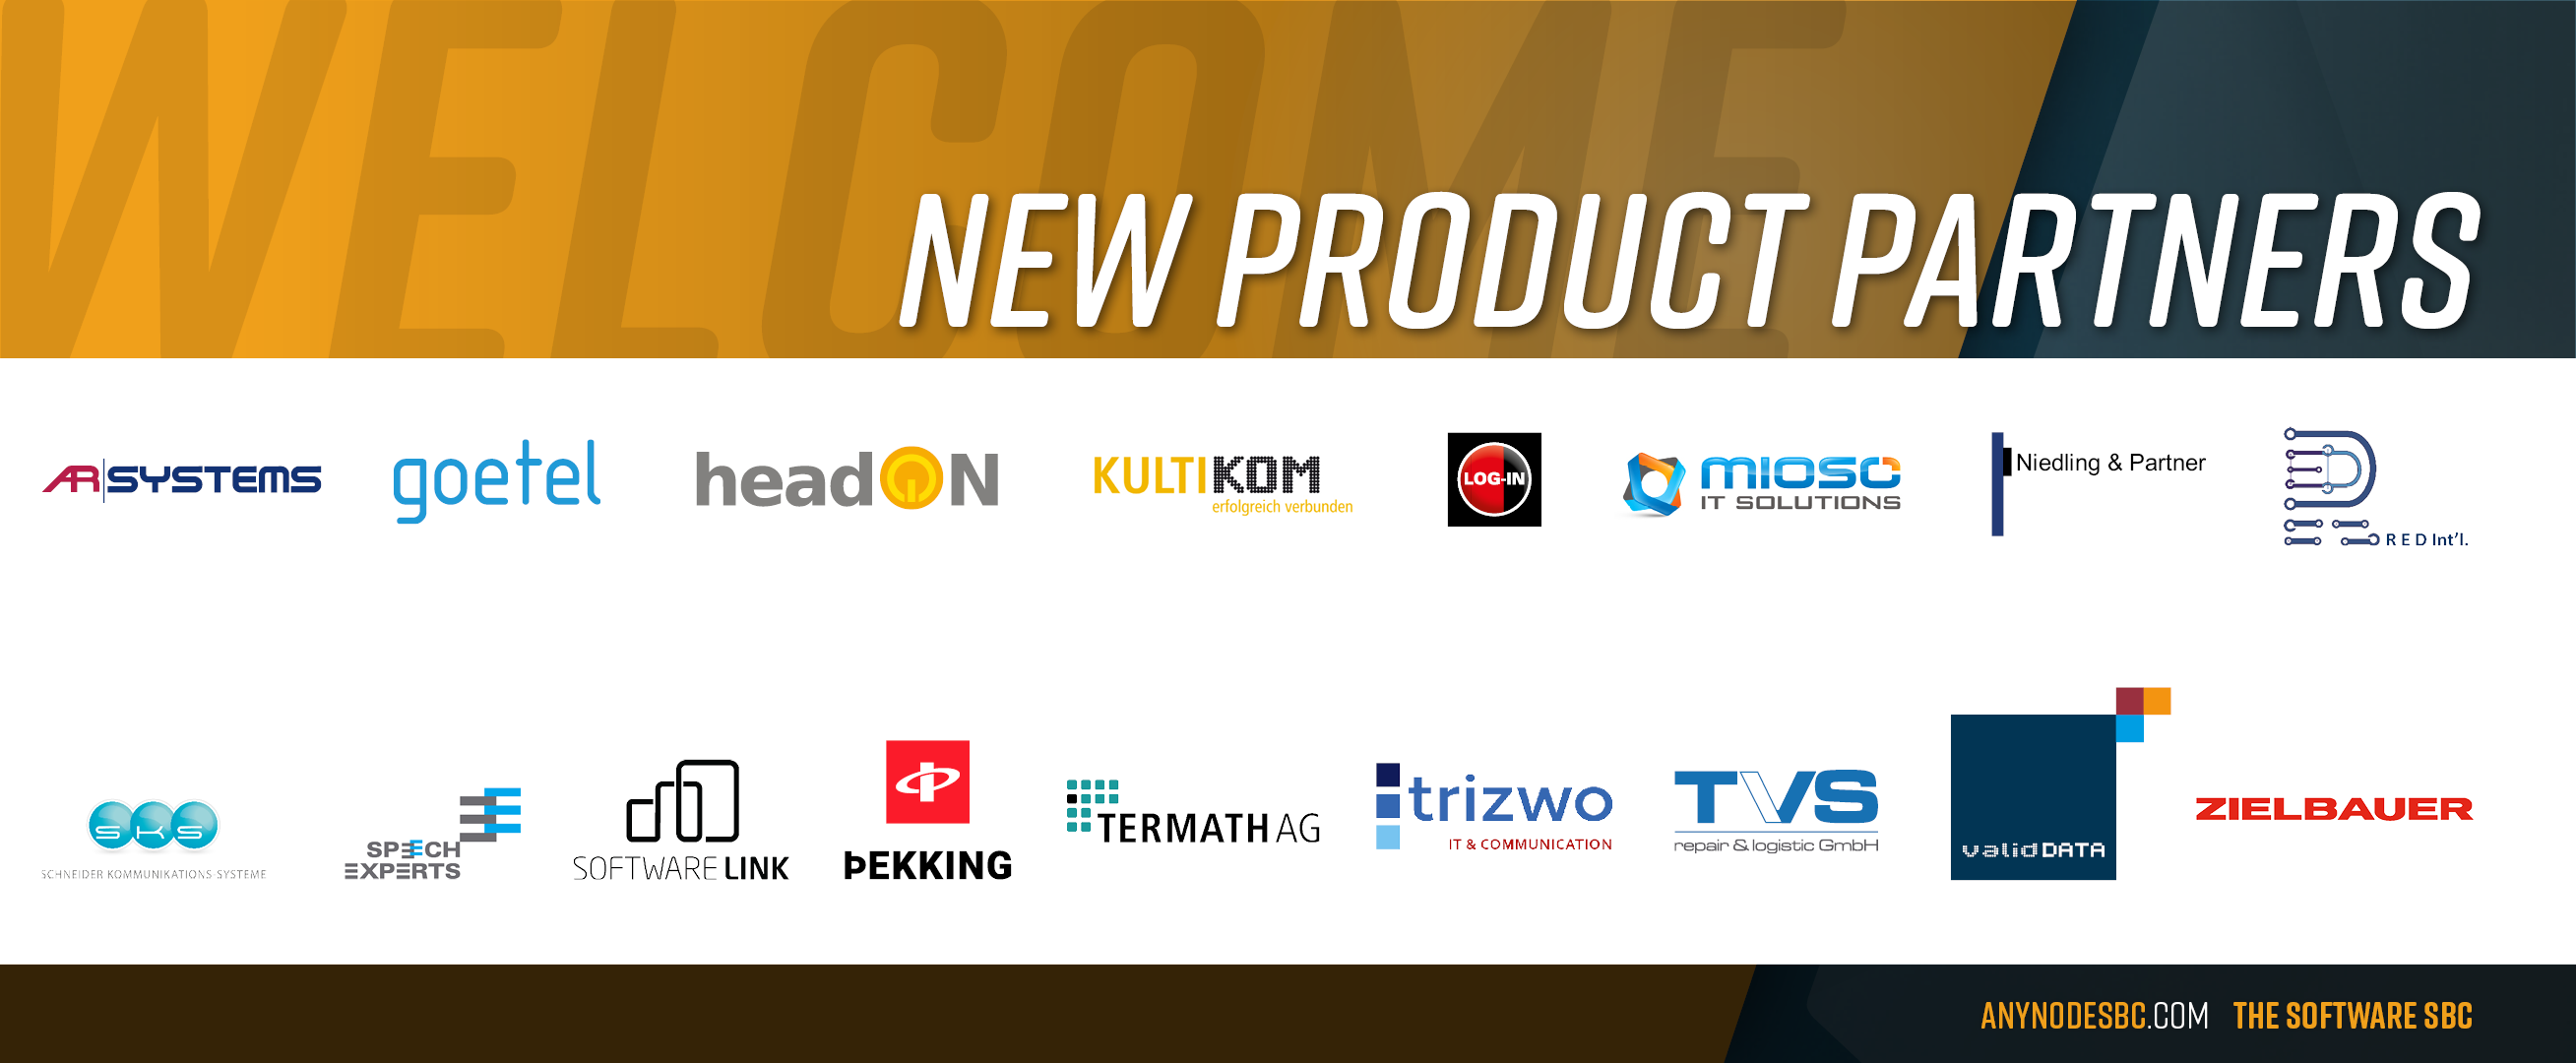 New anynode Product Partners in December 2020!